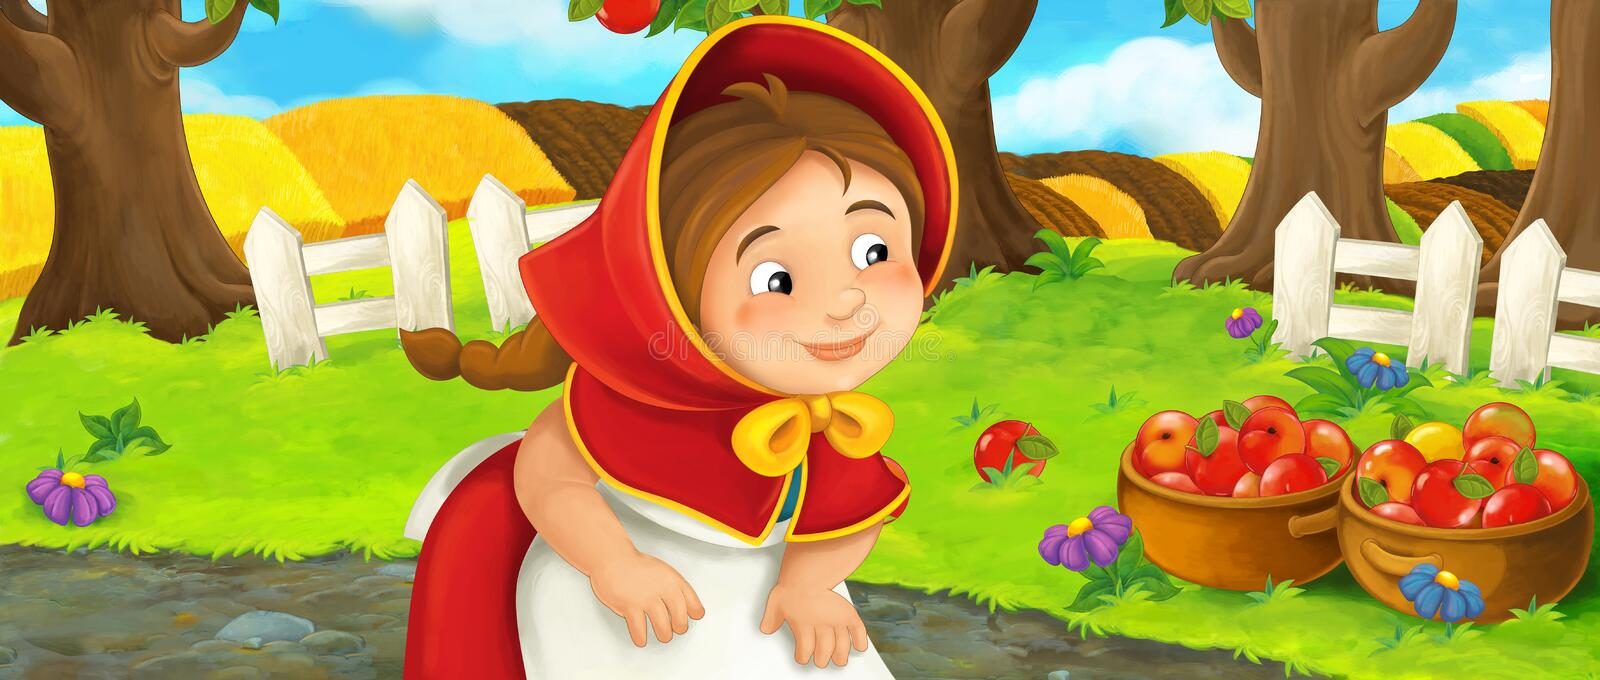 Cartoon happy farm scene with young girl near the orchard beautiful day. Happy and funny traditional illustration for children - scene for different usage stock illustration